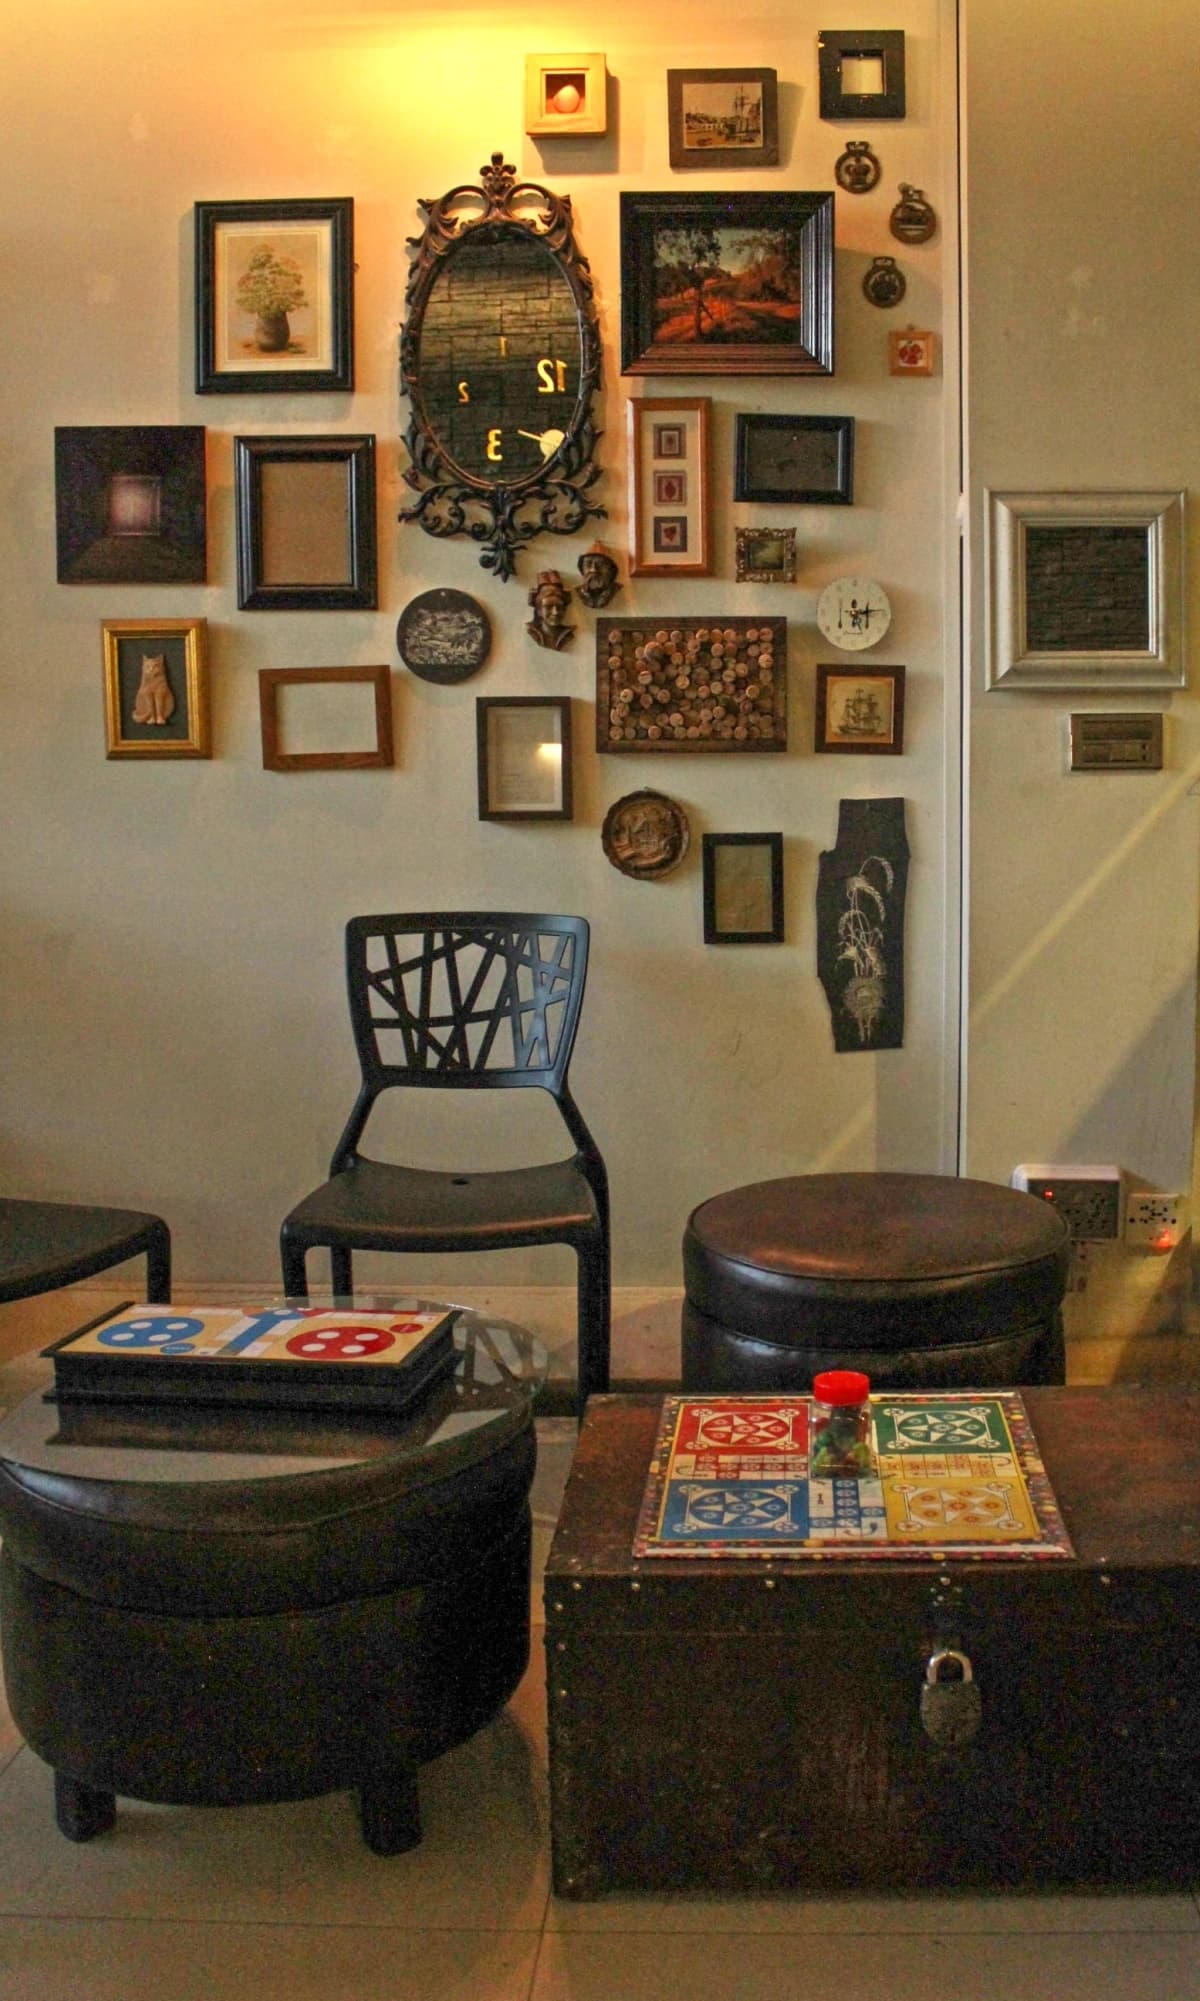 There's room for mental stimulation at Chai Chowk - ludo and chess boards await - Photo by author